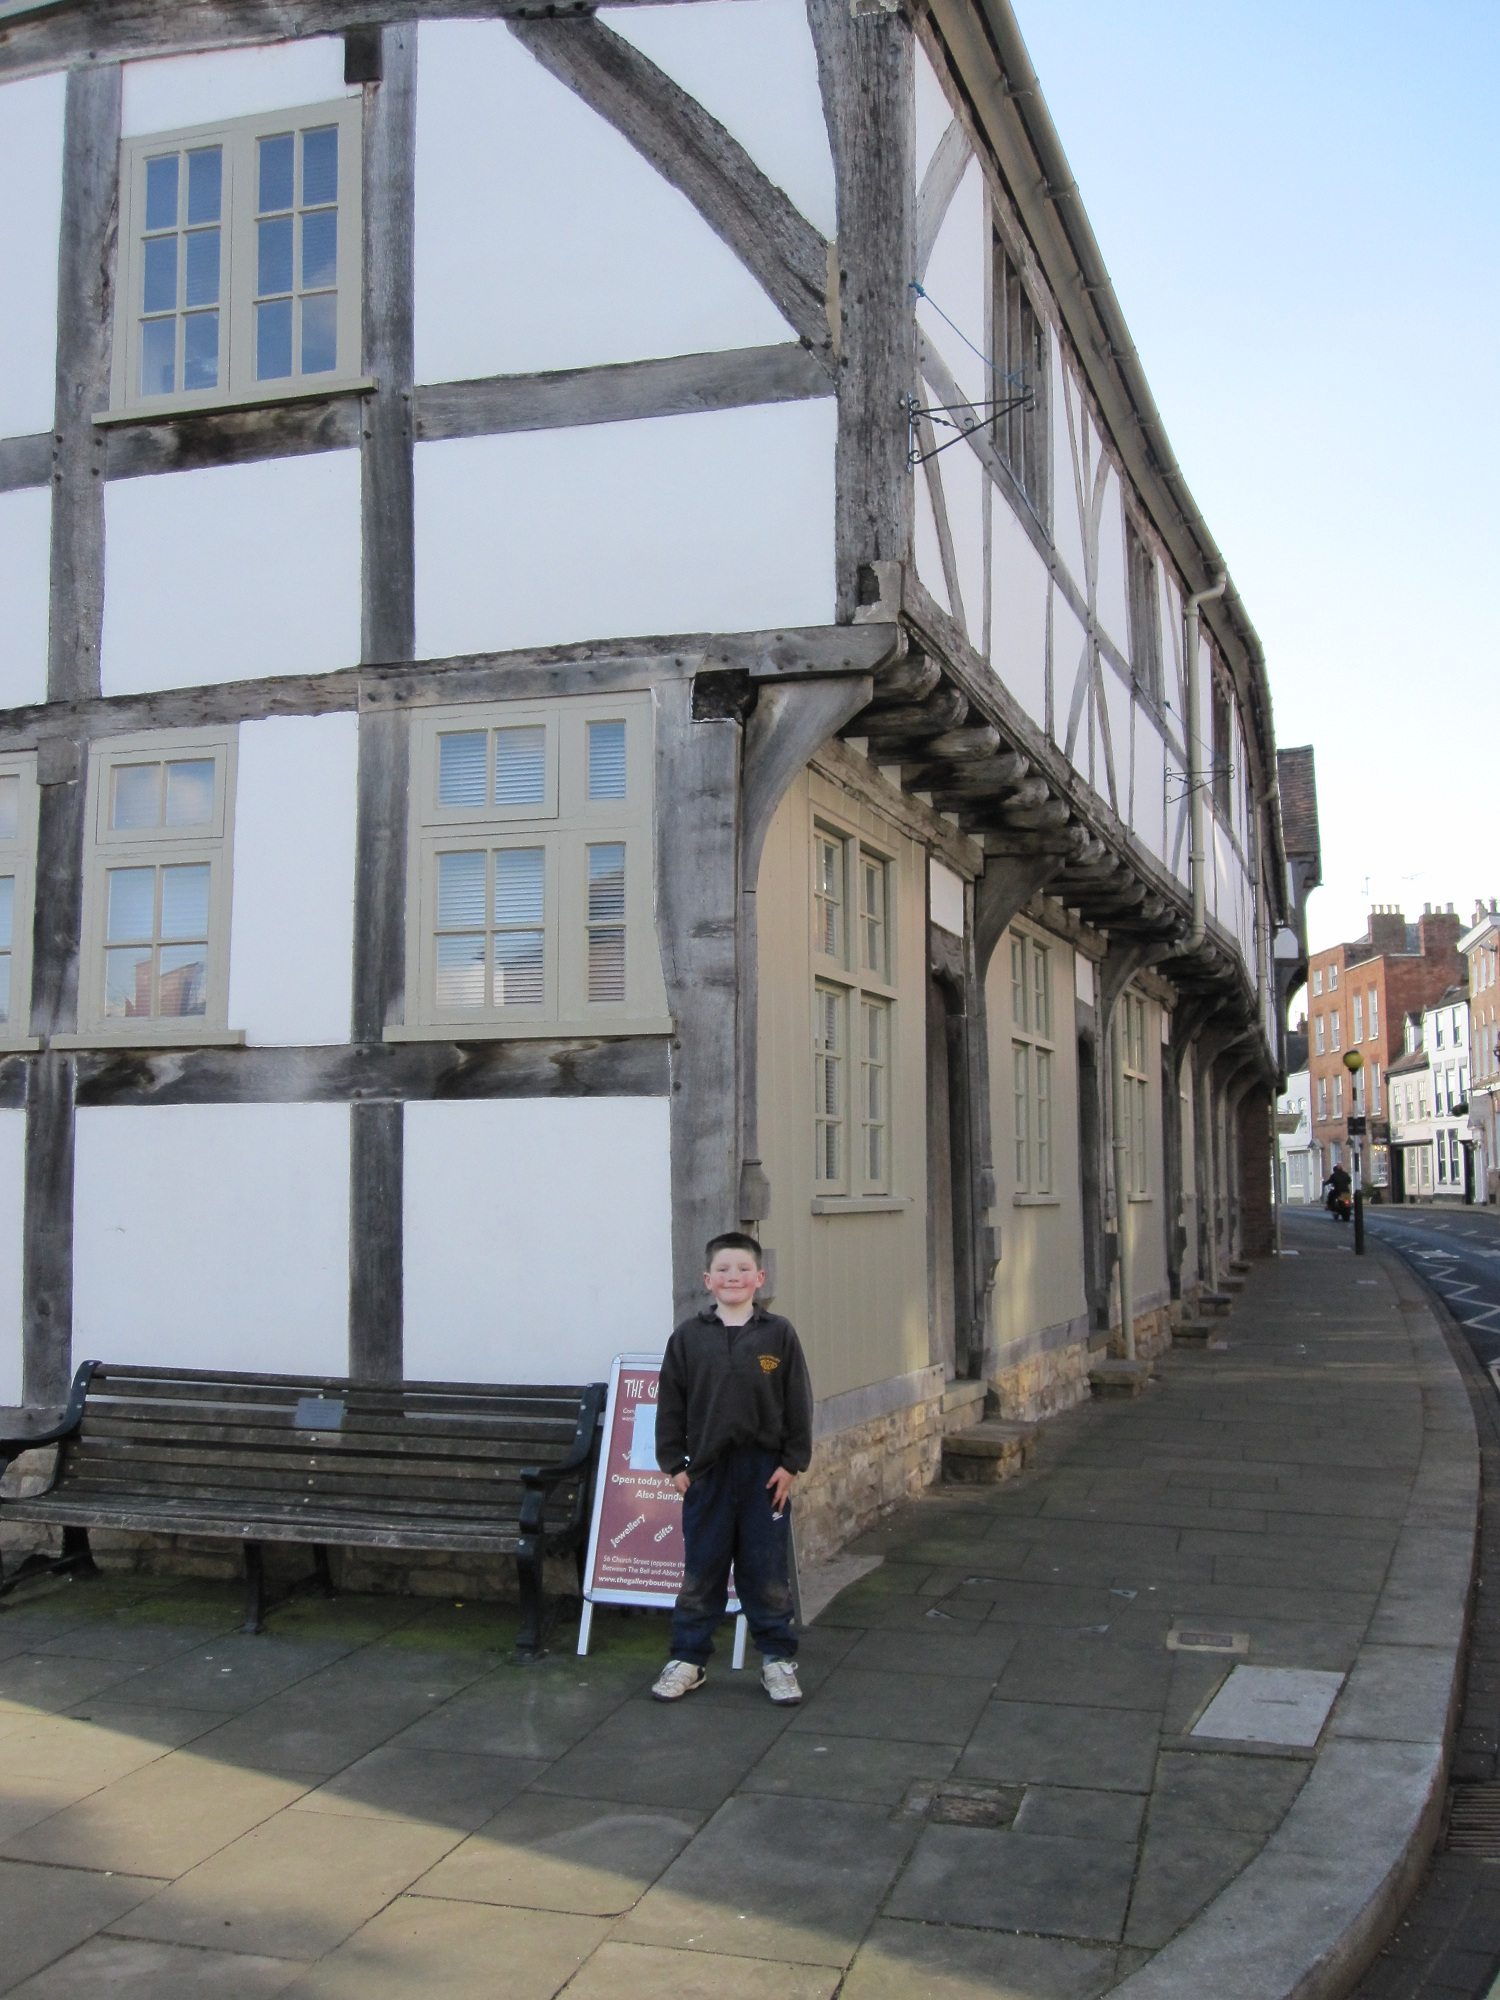 Row of Tudor buildings in Tewkesbury